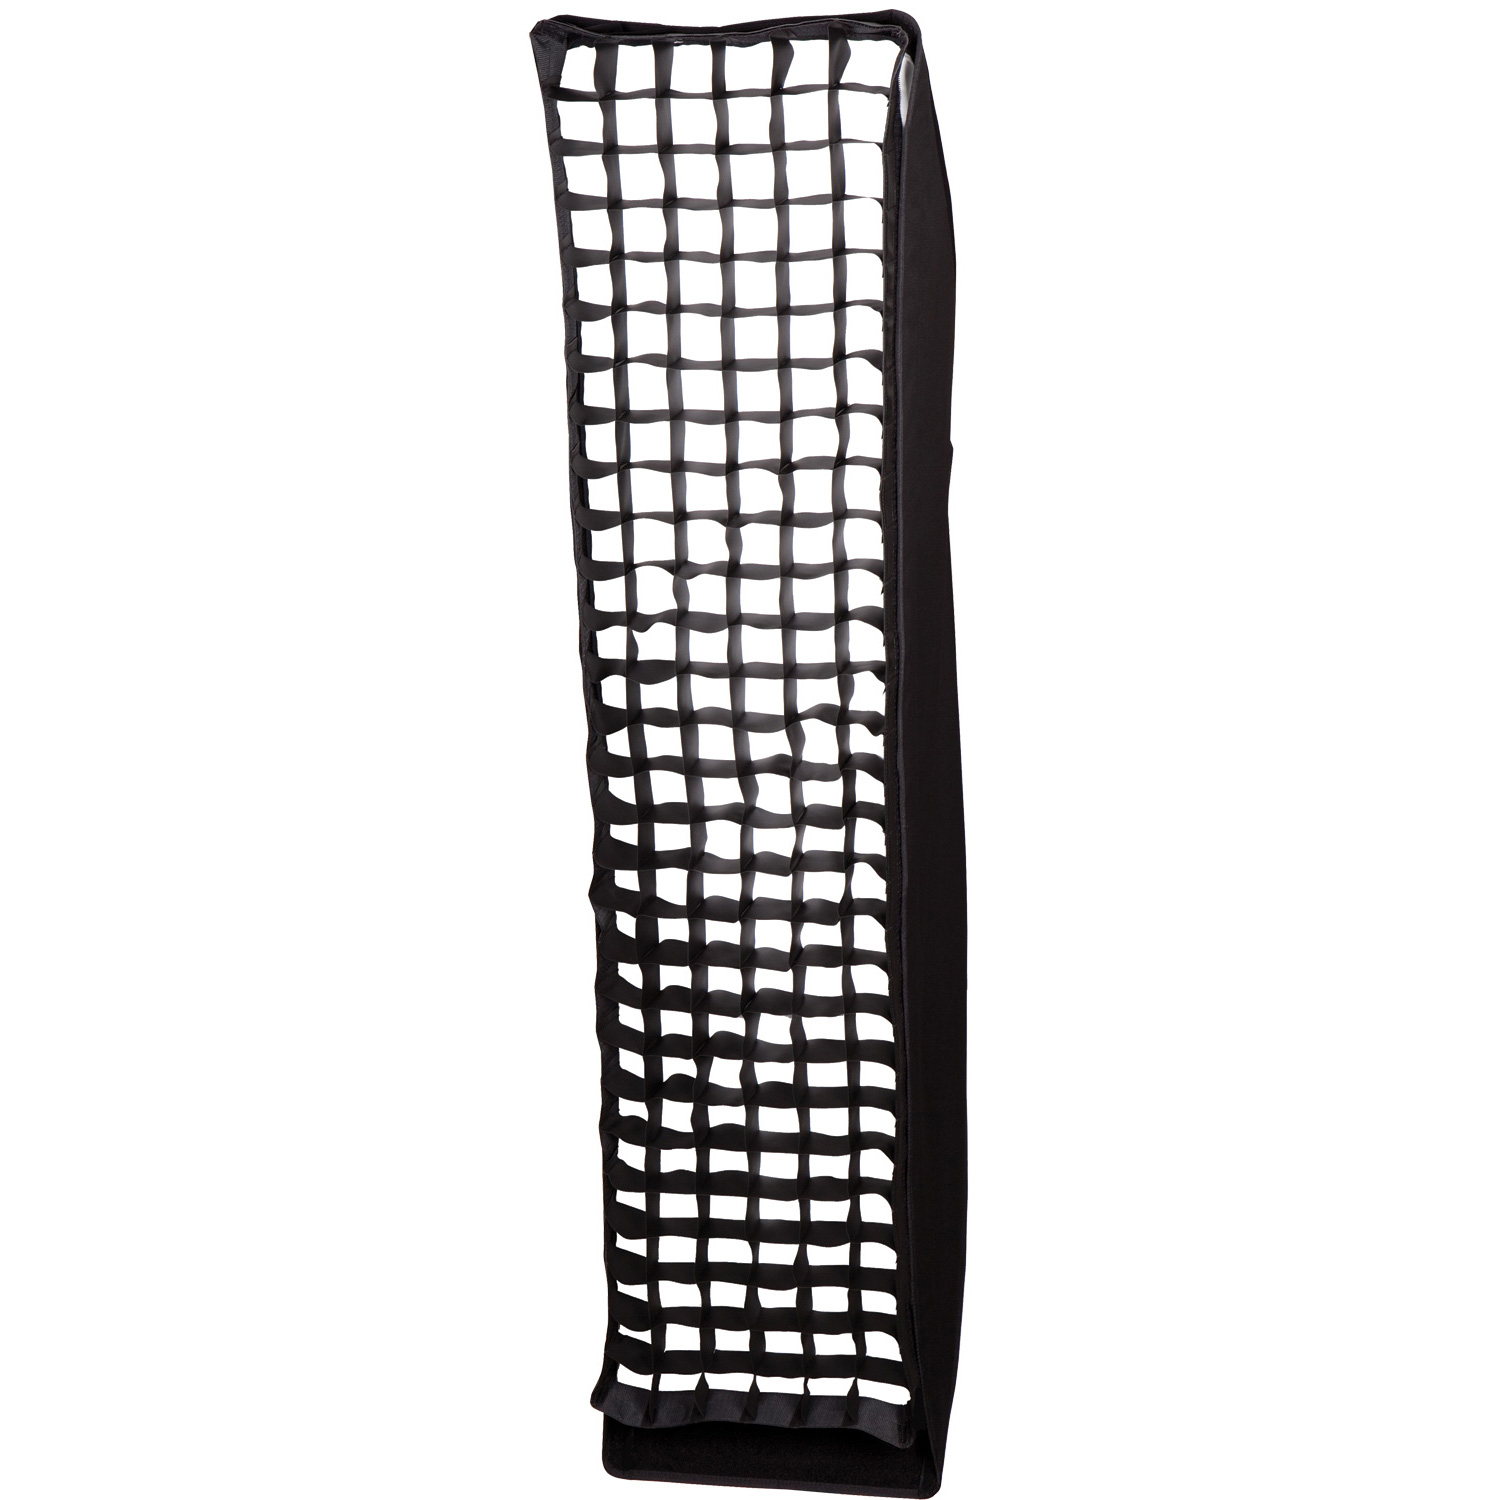 40° Egg Crate Grid for 12-in. x 50-in. Stripbank